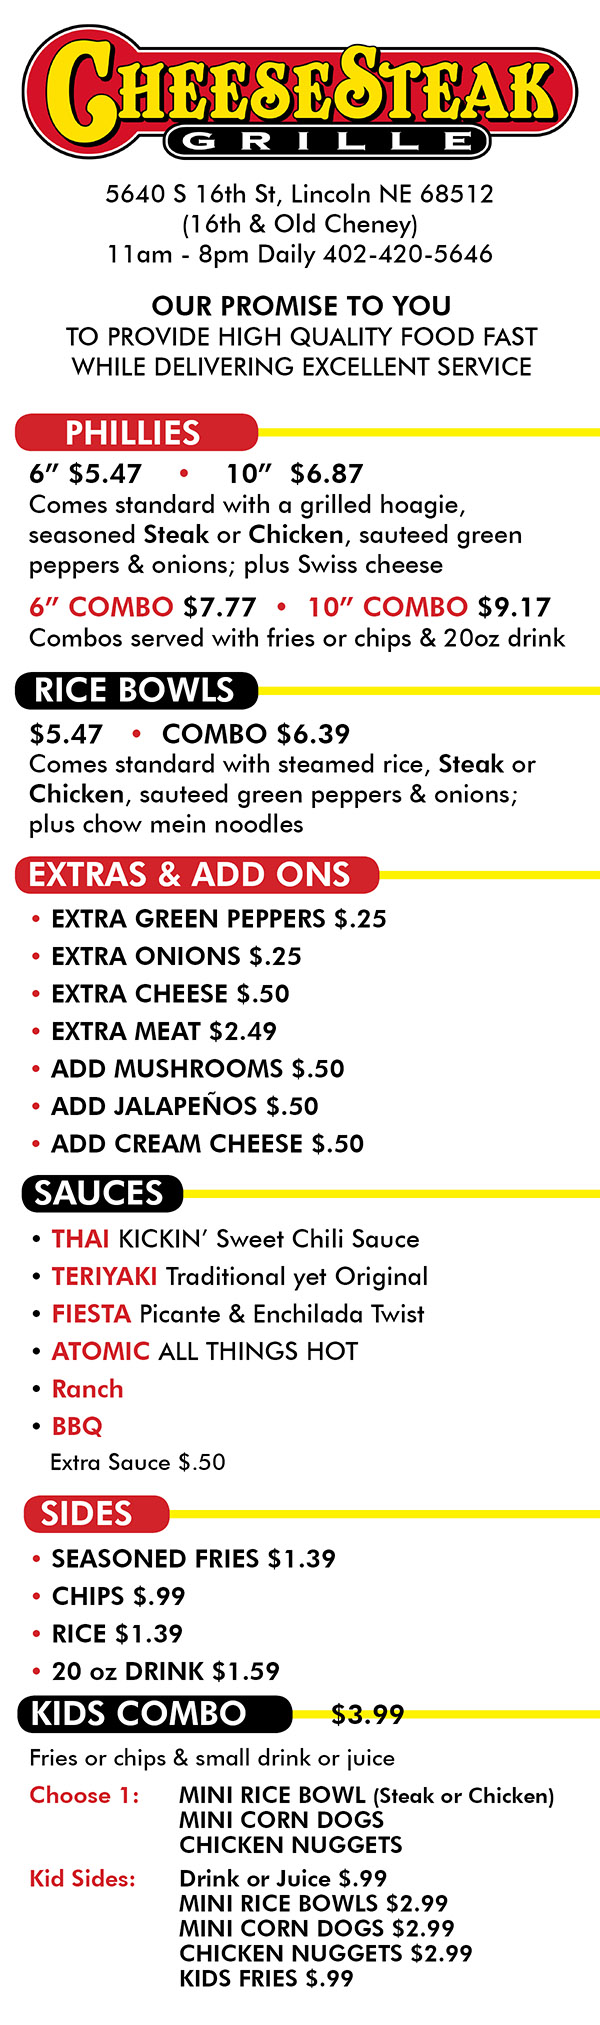 Cheesesteak Grille Menu 5640 S 16th St Lincoln Ne